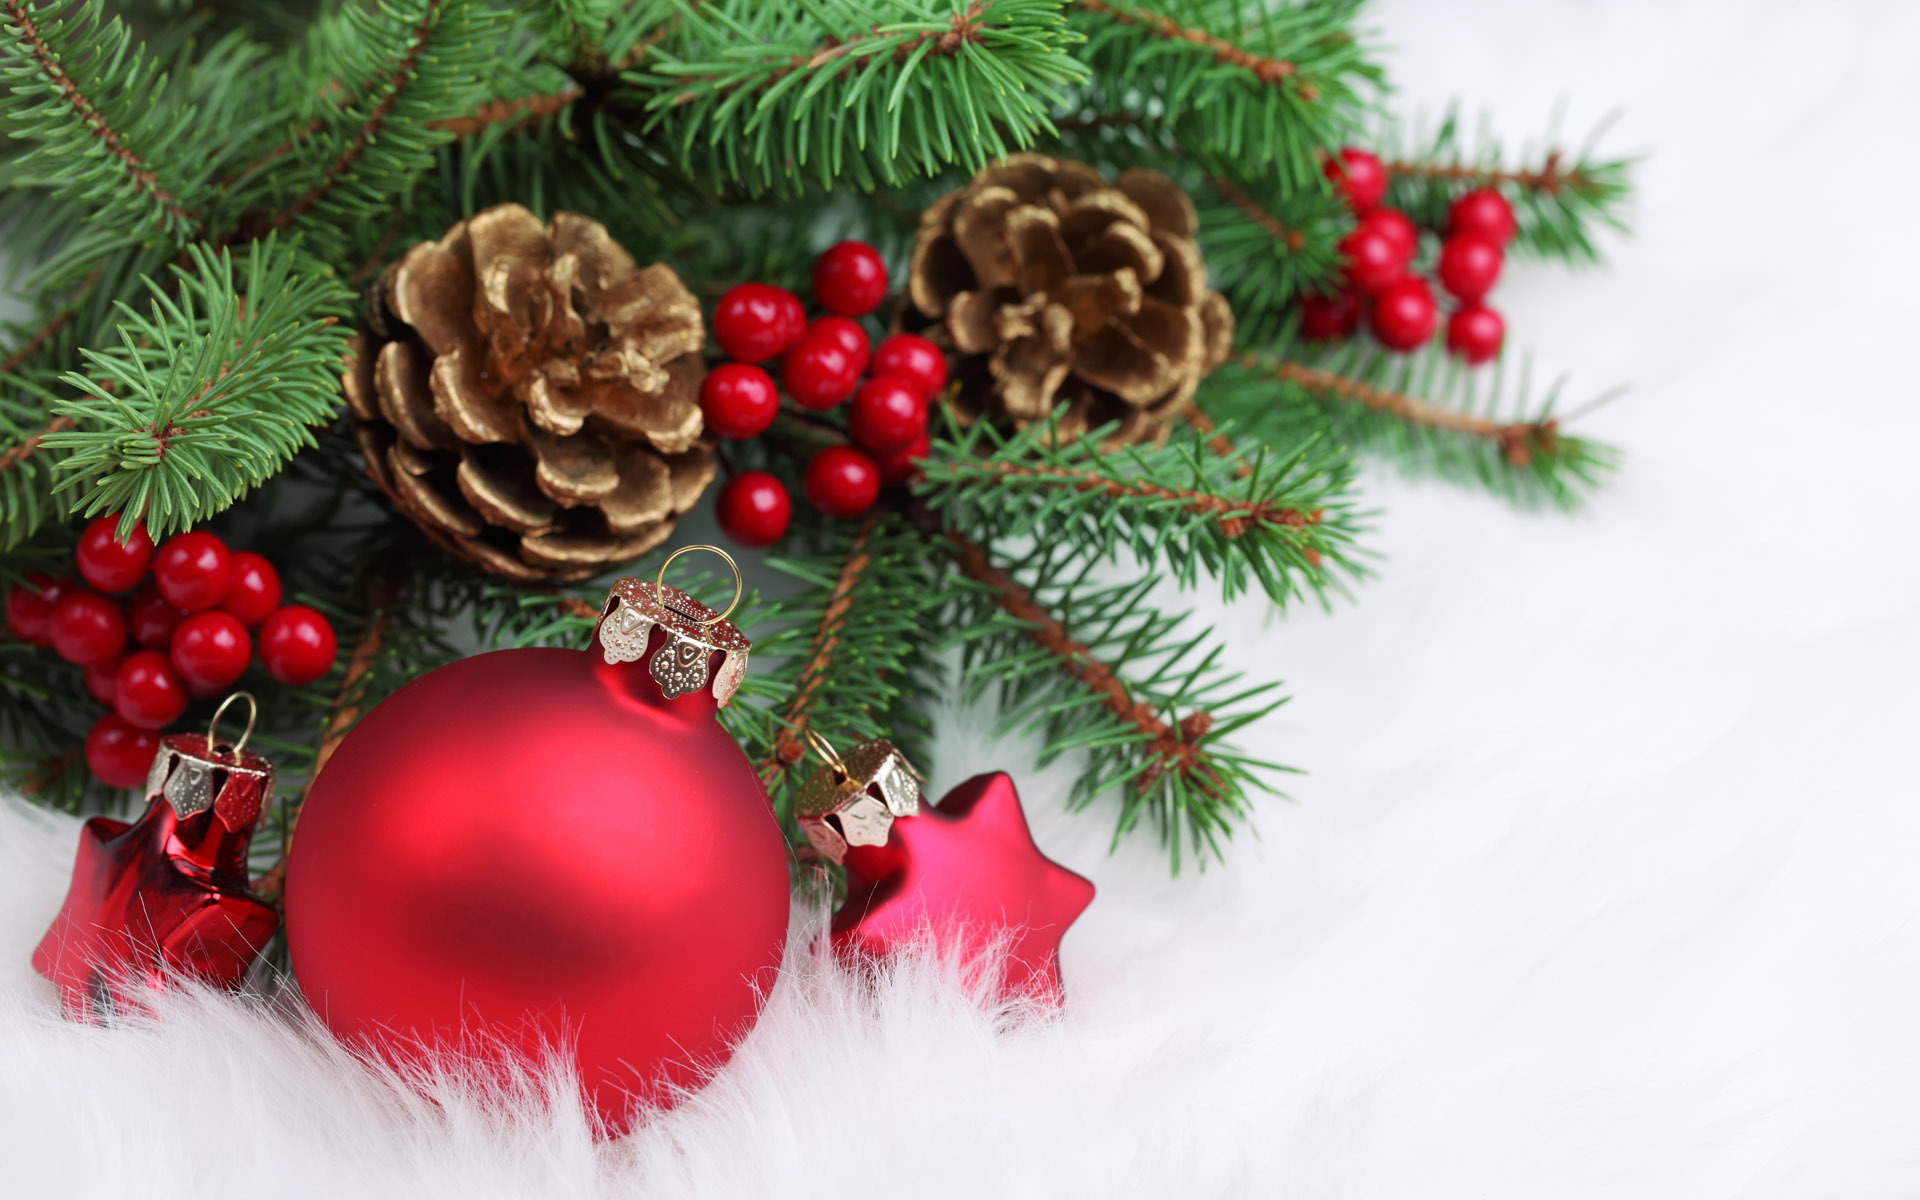 Christmas-decorations-